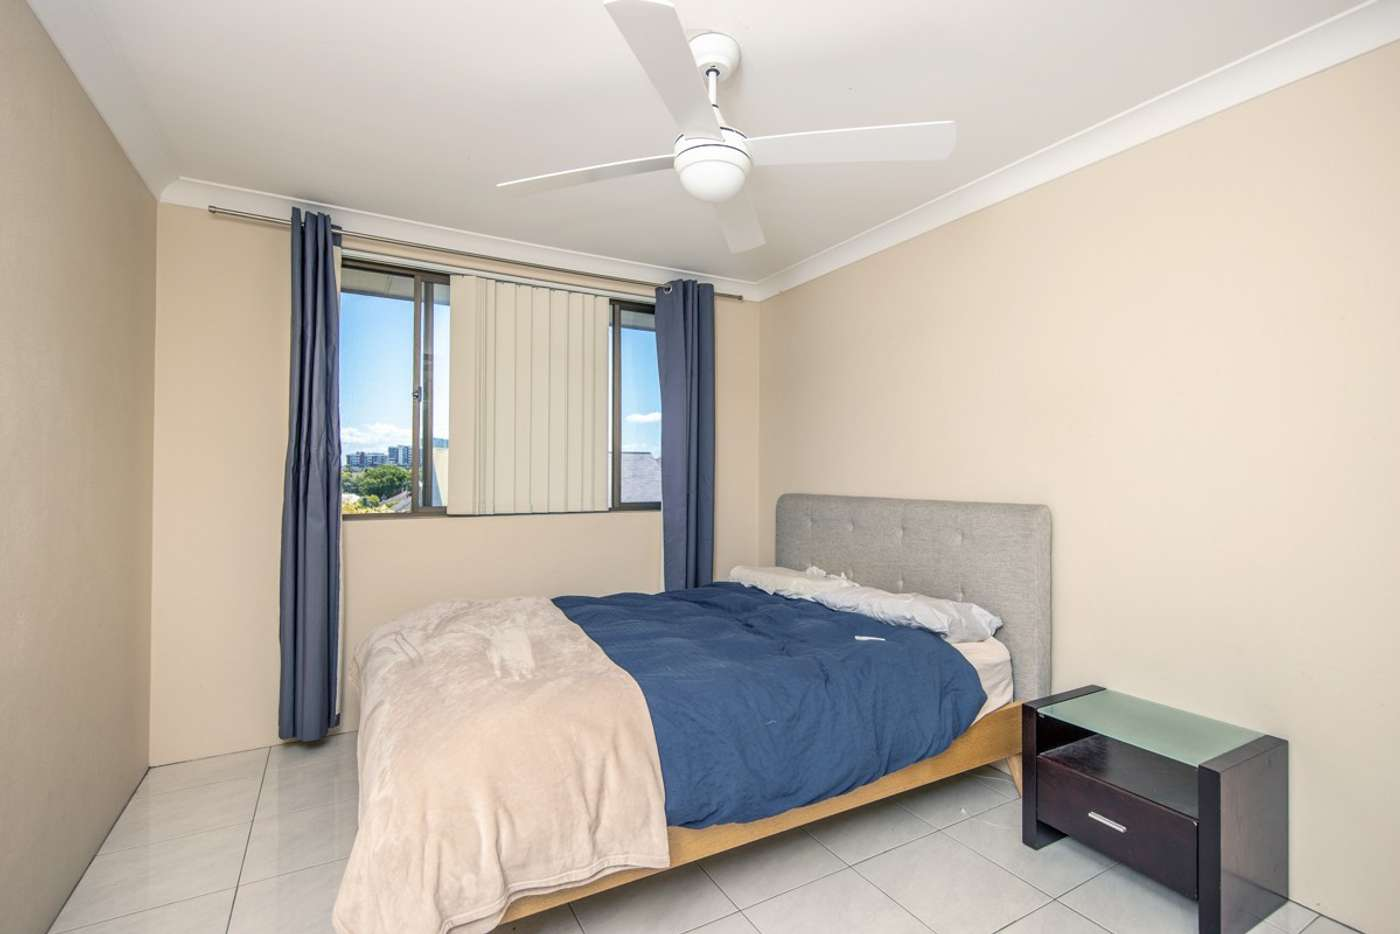 Sixth view of Homely unit listing, 5/195 Darby Street, Cooks Hill NSW 2300